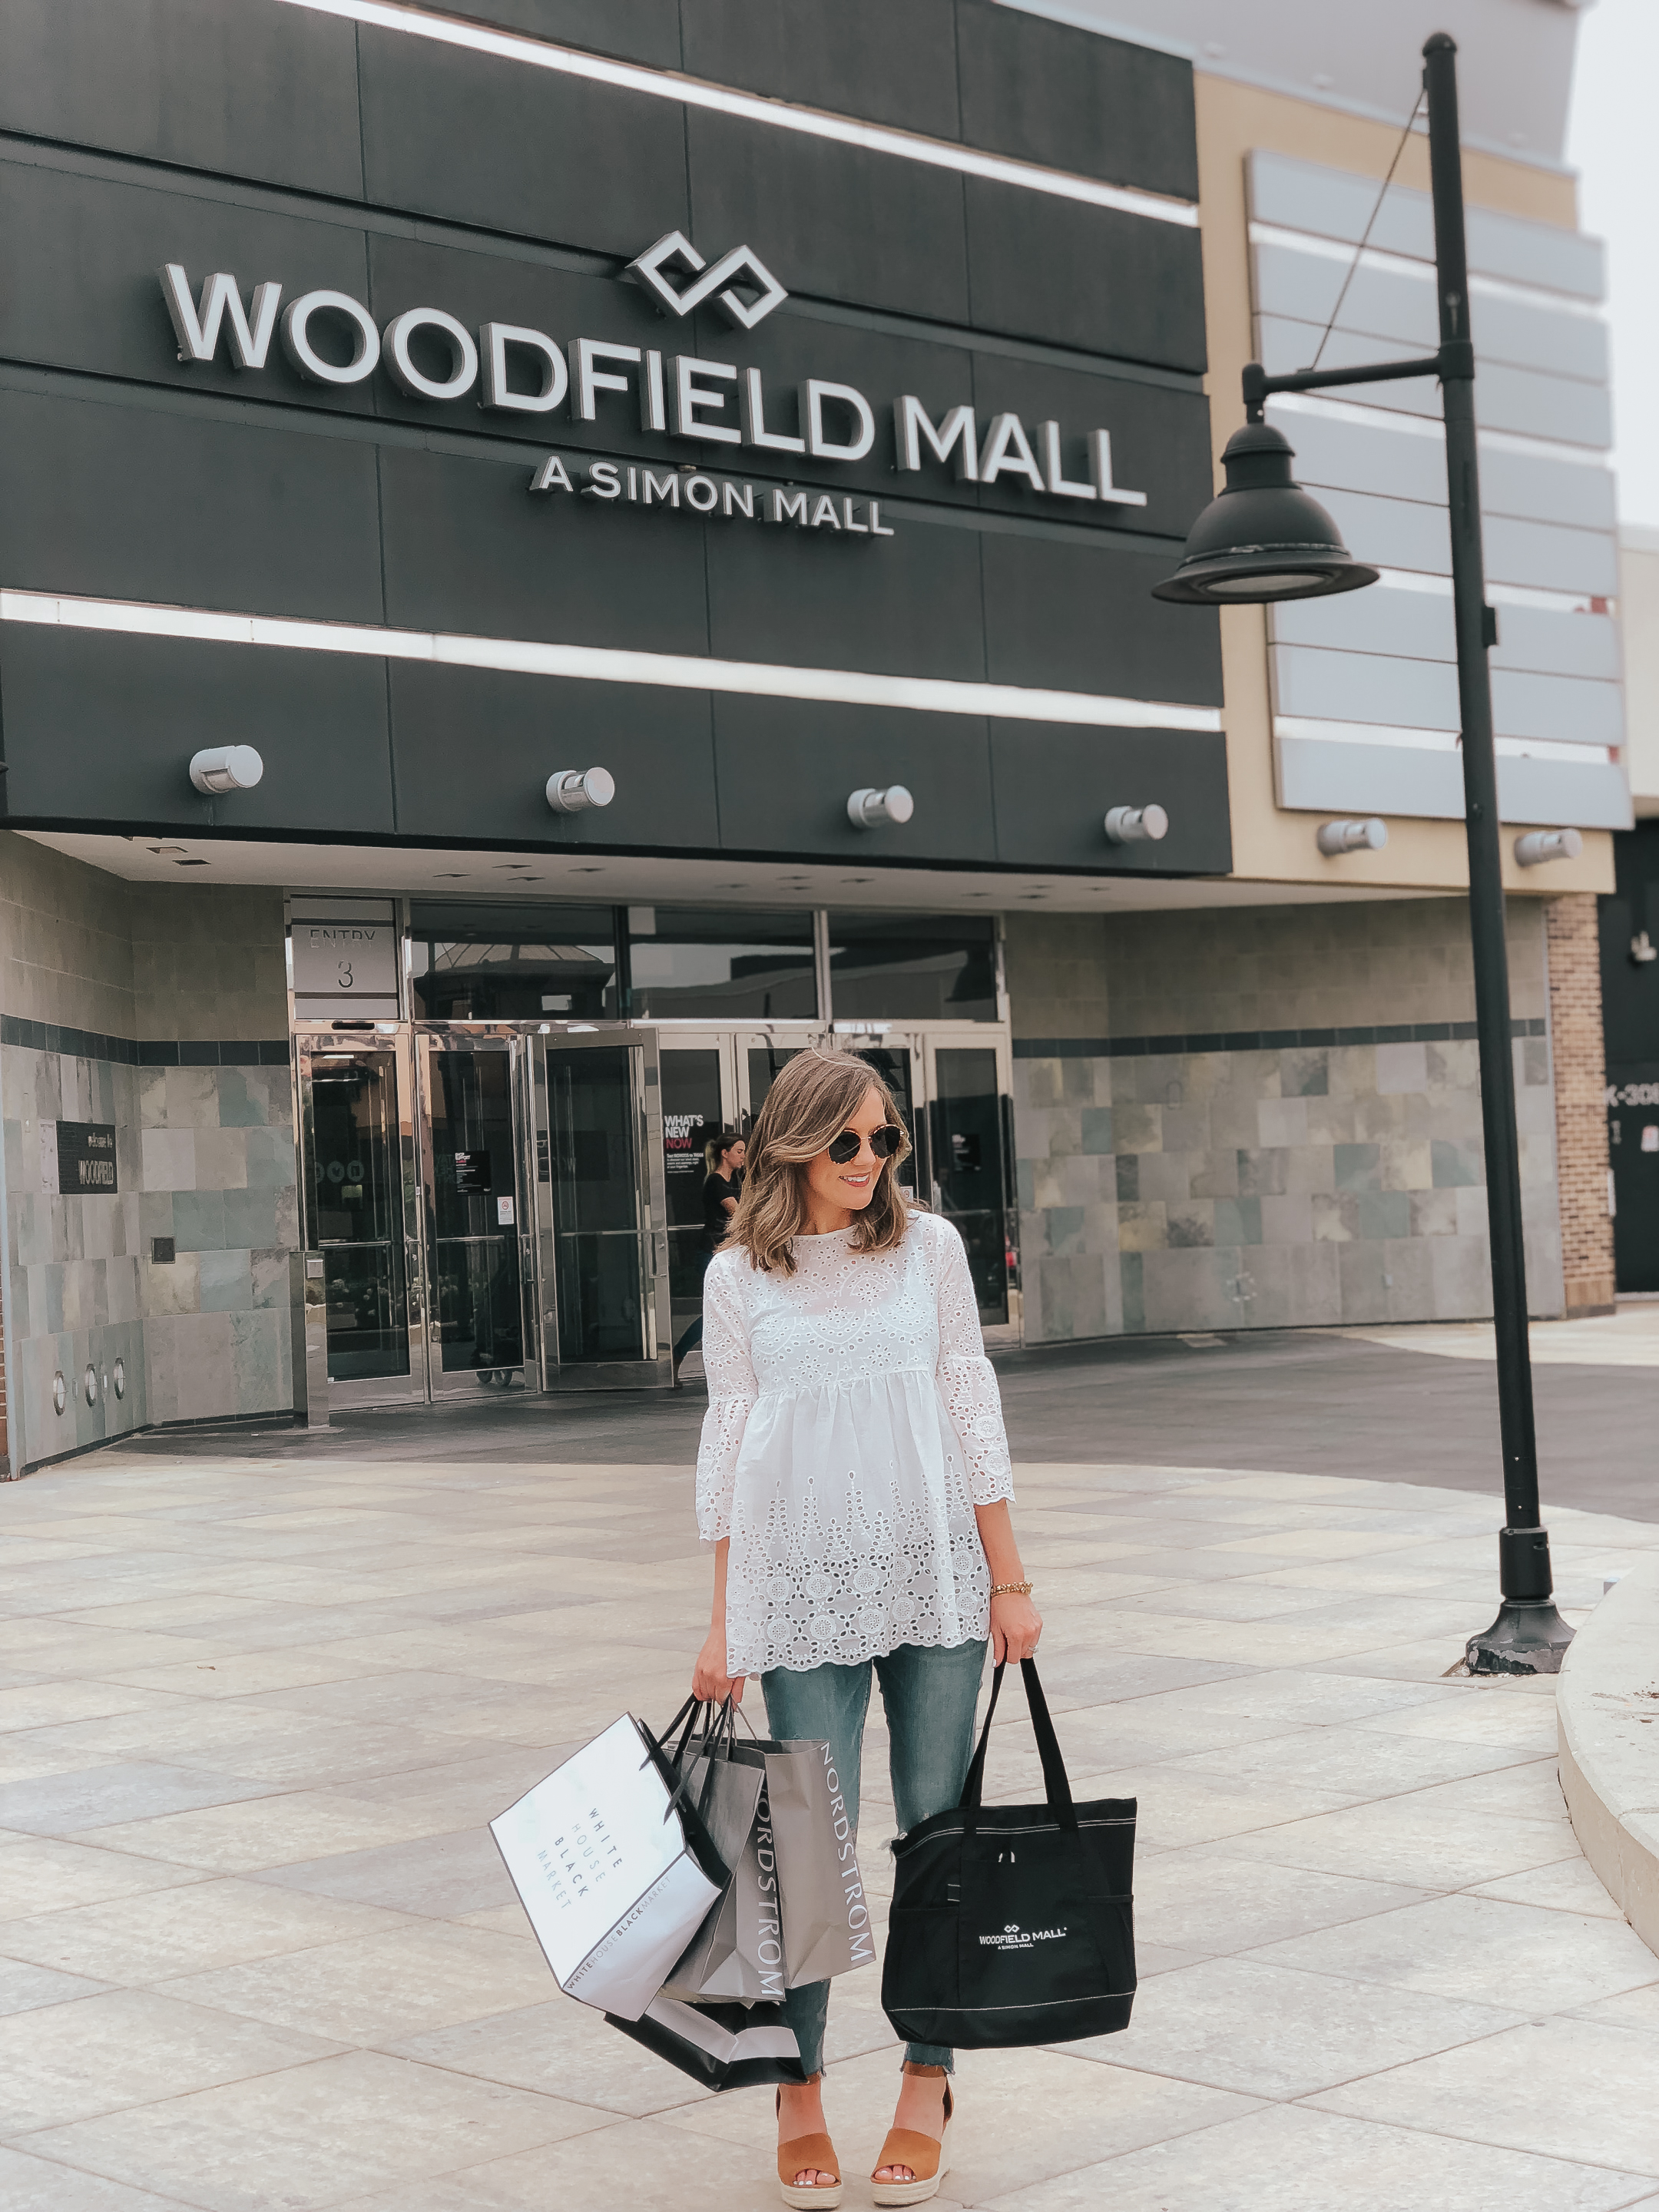 simon malls, woodfield, mother's day gift ideas